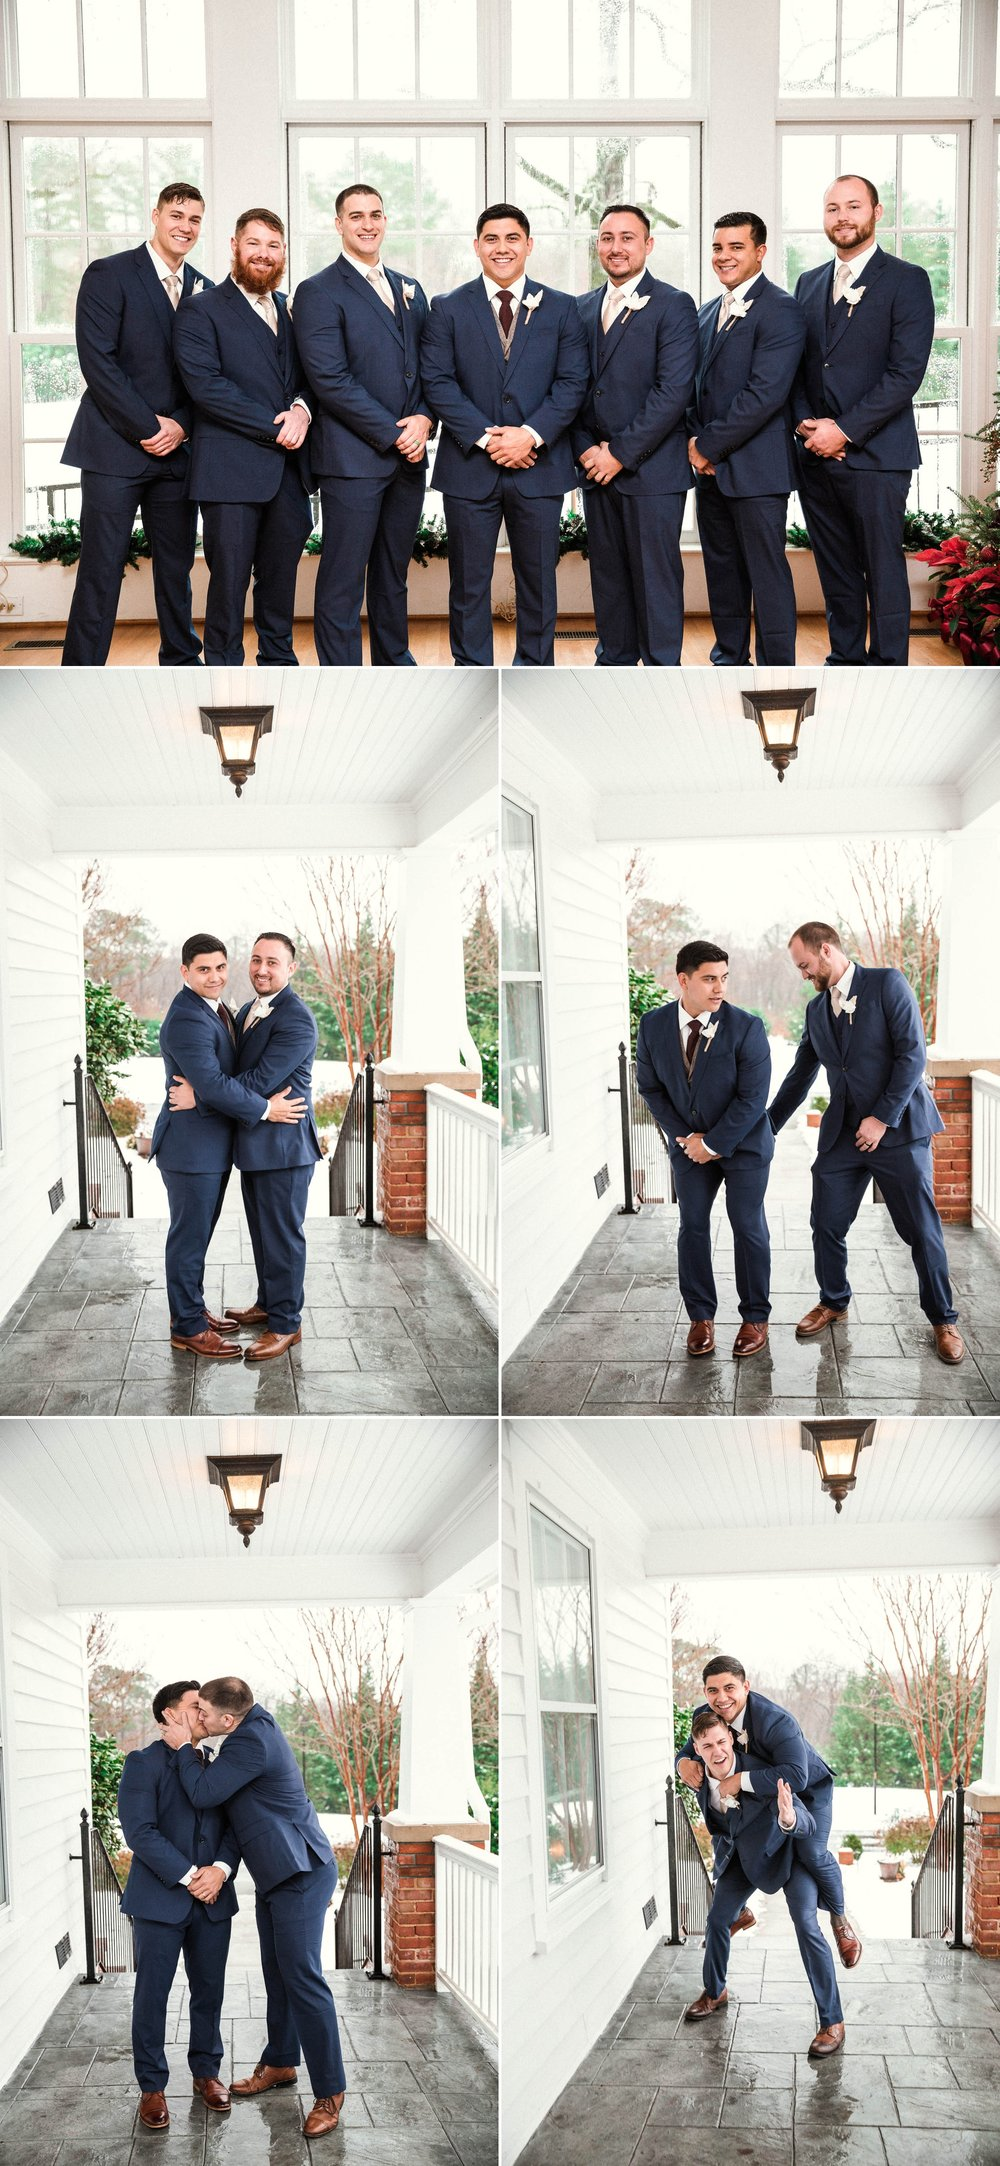 groomsman portraits - Jessica + Brandon - Snowy Winter Wedding at the Rand Bryan House in Garner, NC - Raleigh North Carolina Wedding Photographer